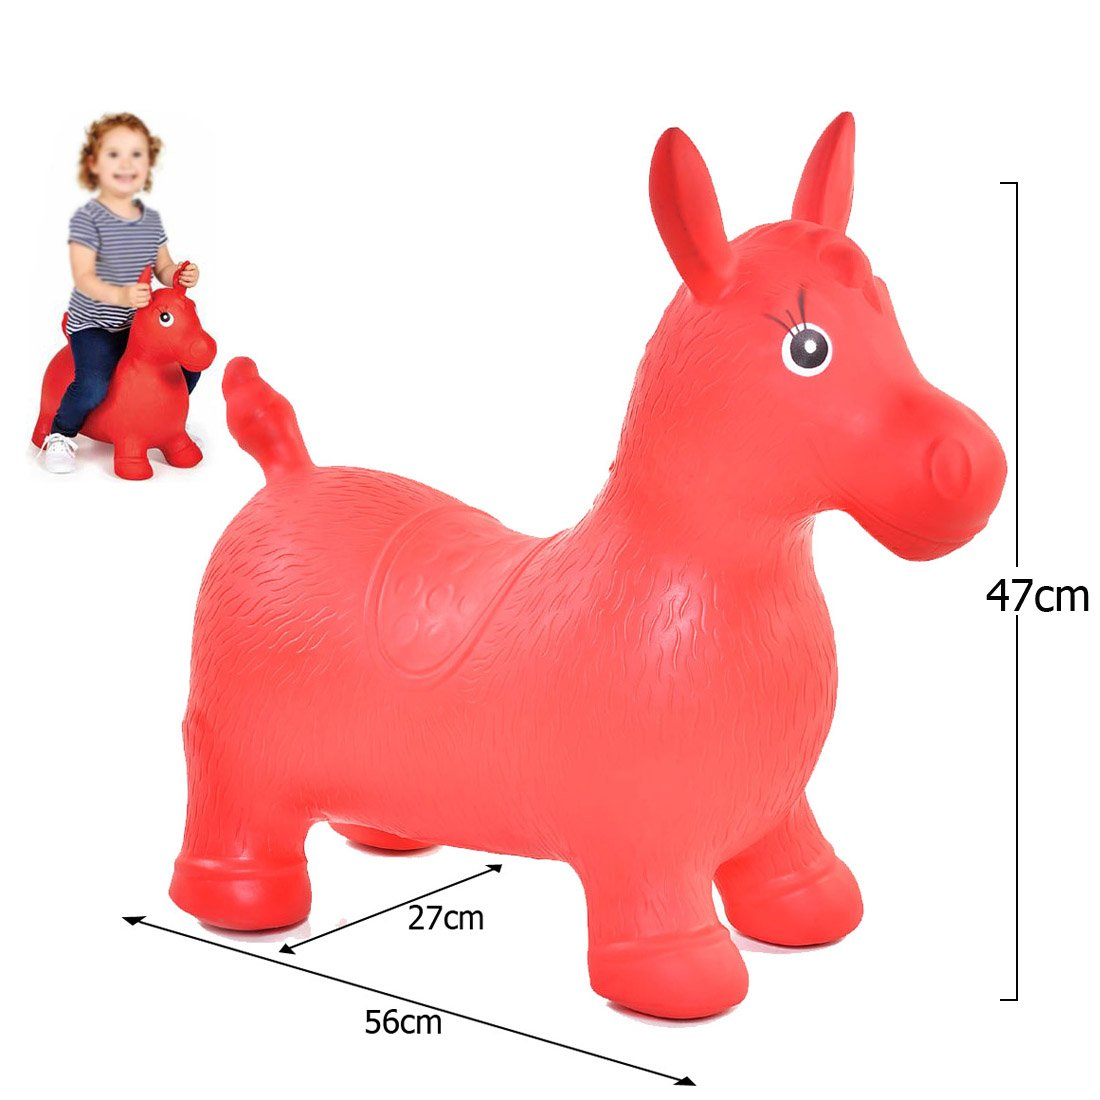 JJOnlineStore - Kids Boys Girls Animal Space Hopper Happy Inflatable Soft Horse Ride on Bouncy Soft Play Toys Bouncing Exercise Game (Green)